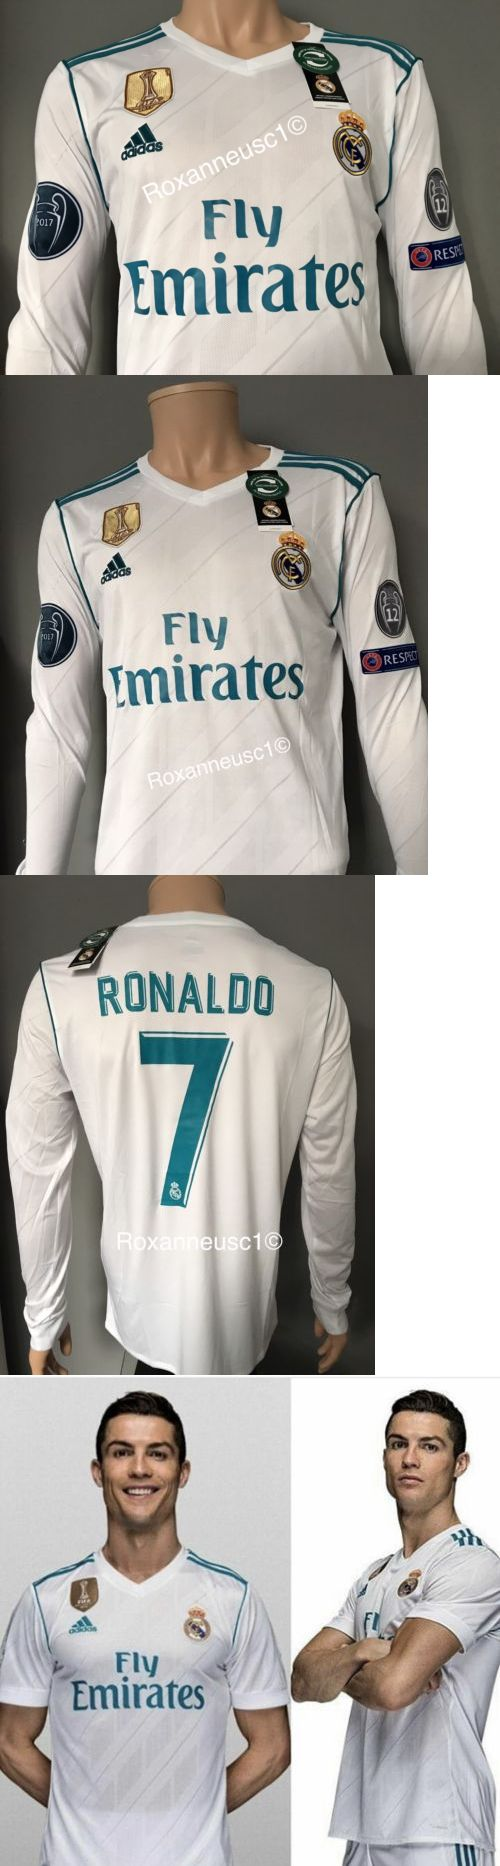 Keylor navas pays tribute to cristiano ronaldo sports mole - Men 123490 Cristiano Ronaldo 2017 2018 Real Madrid Long Sleeve Home Jersey Champions League